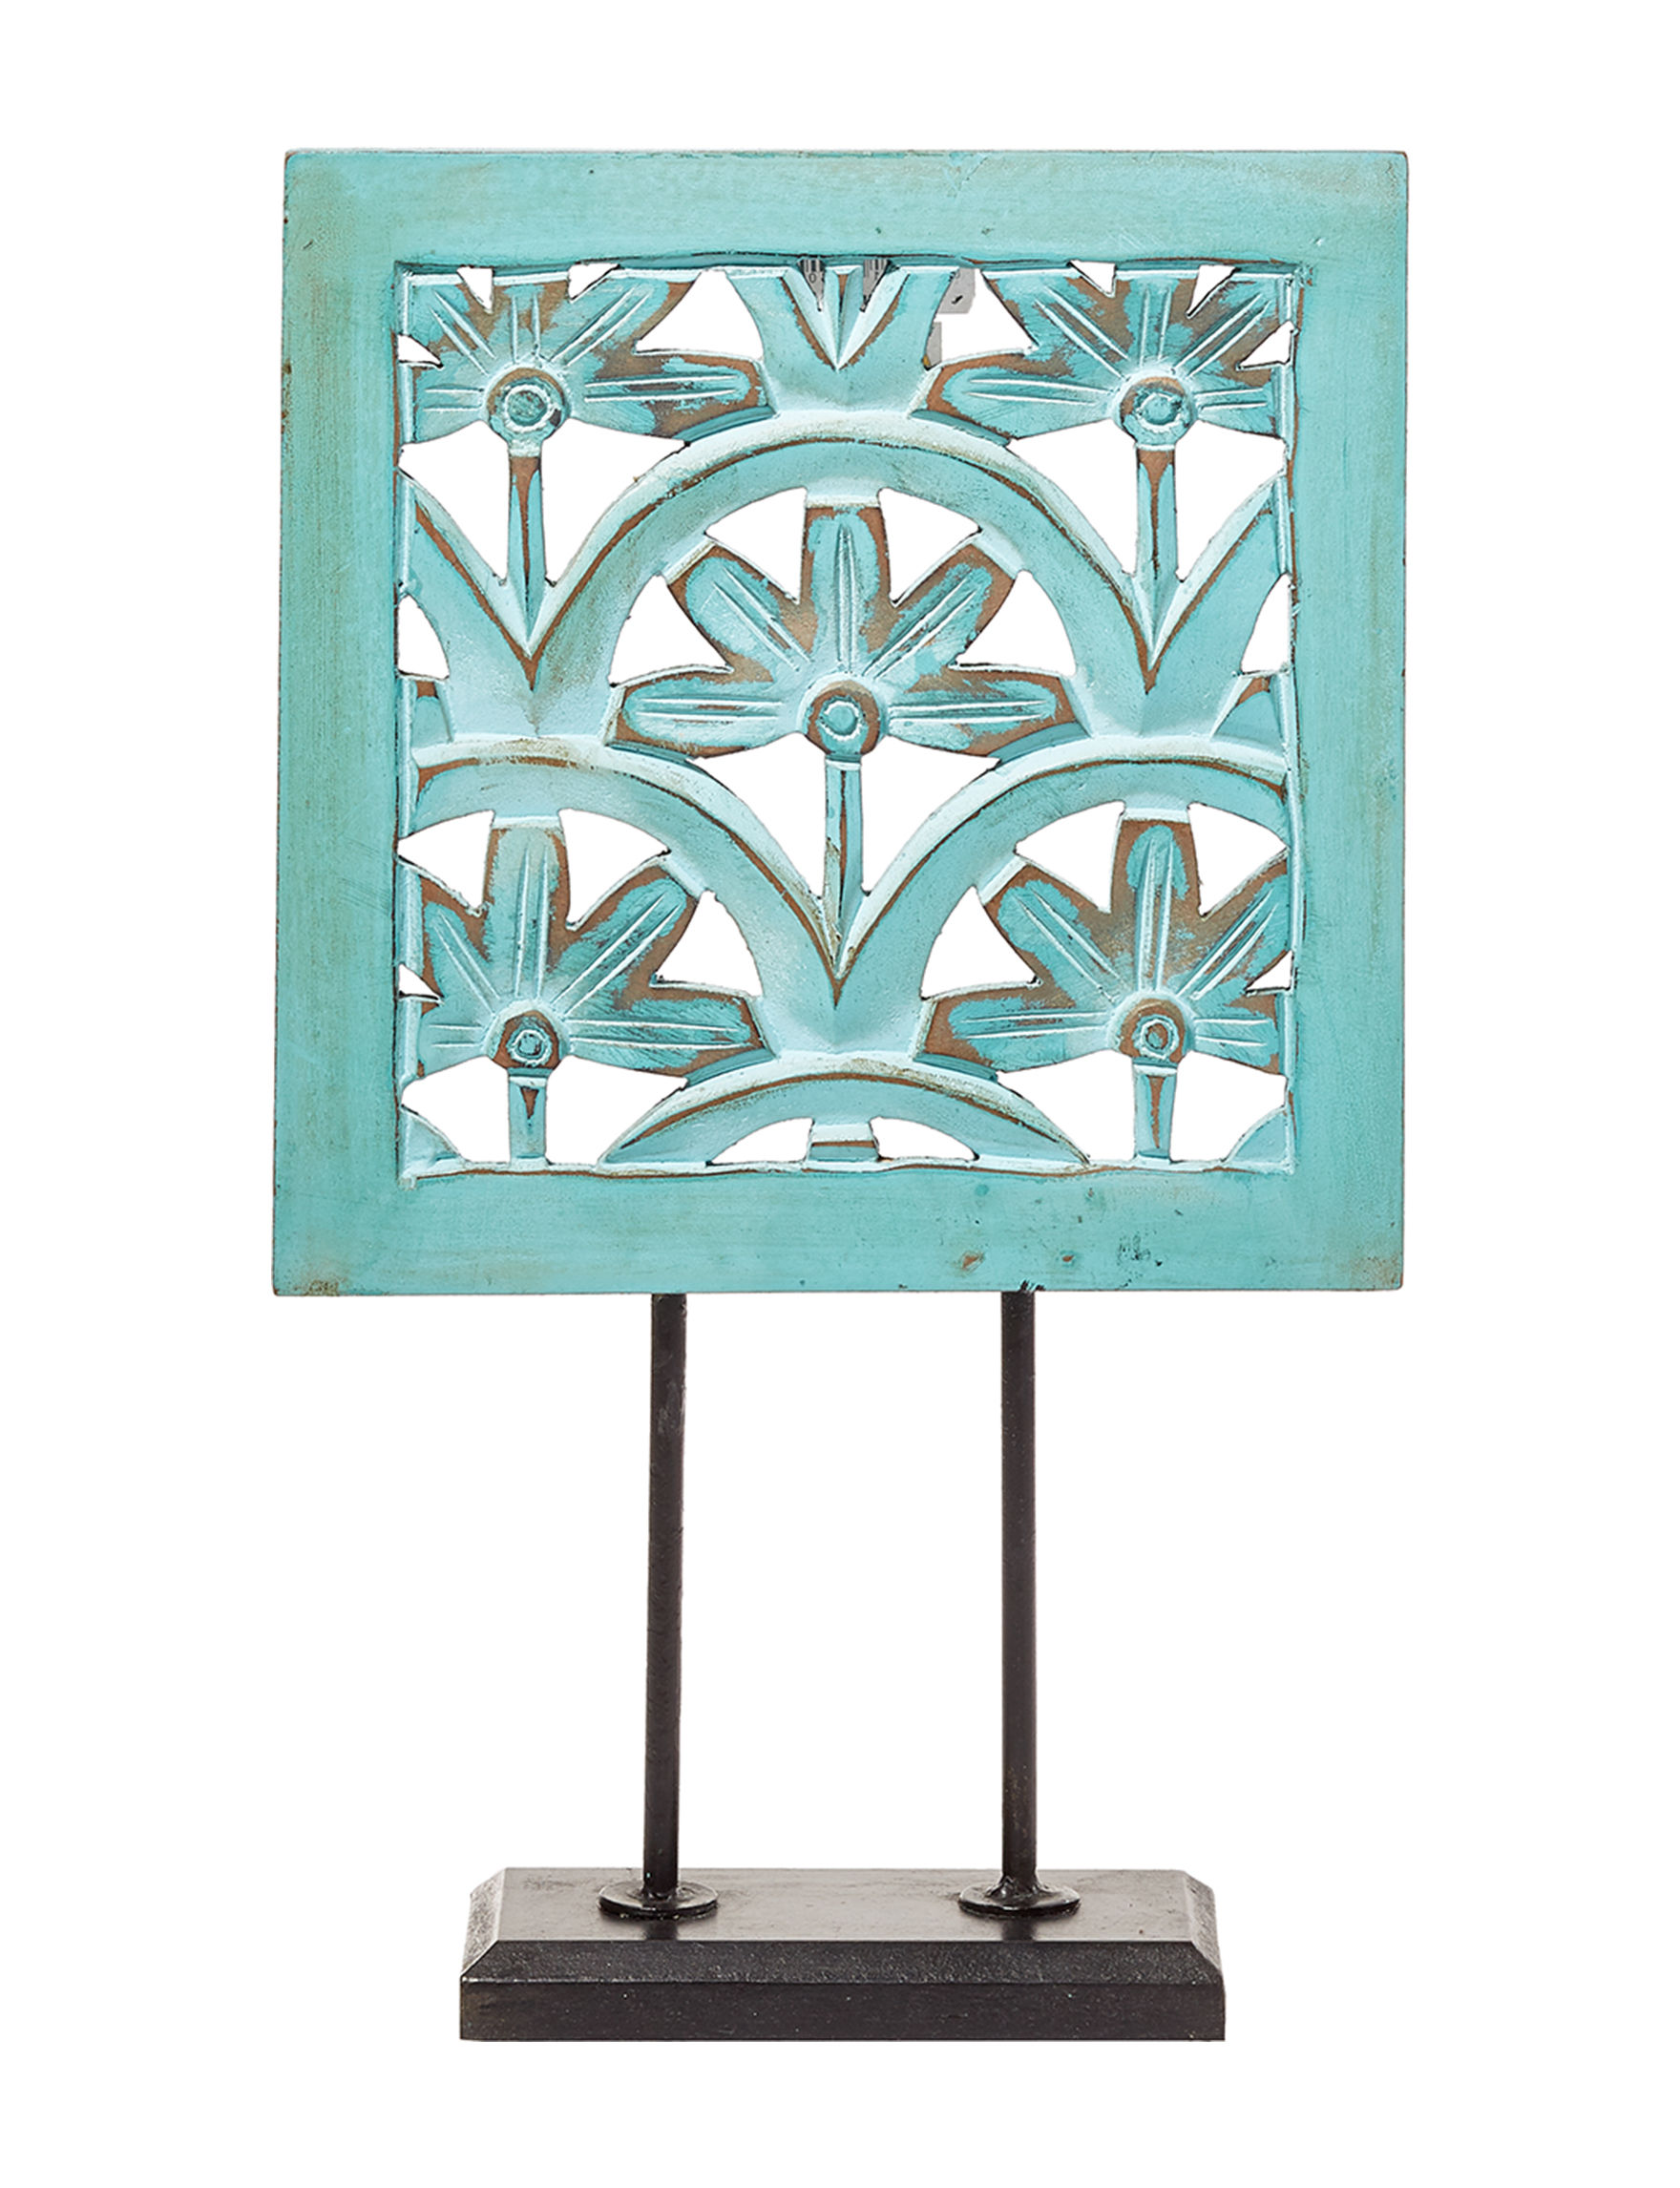 Crystal Art Gallery Turquoise Decorative Objects Home Accents